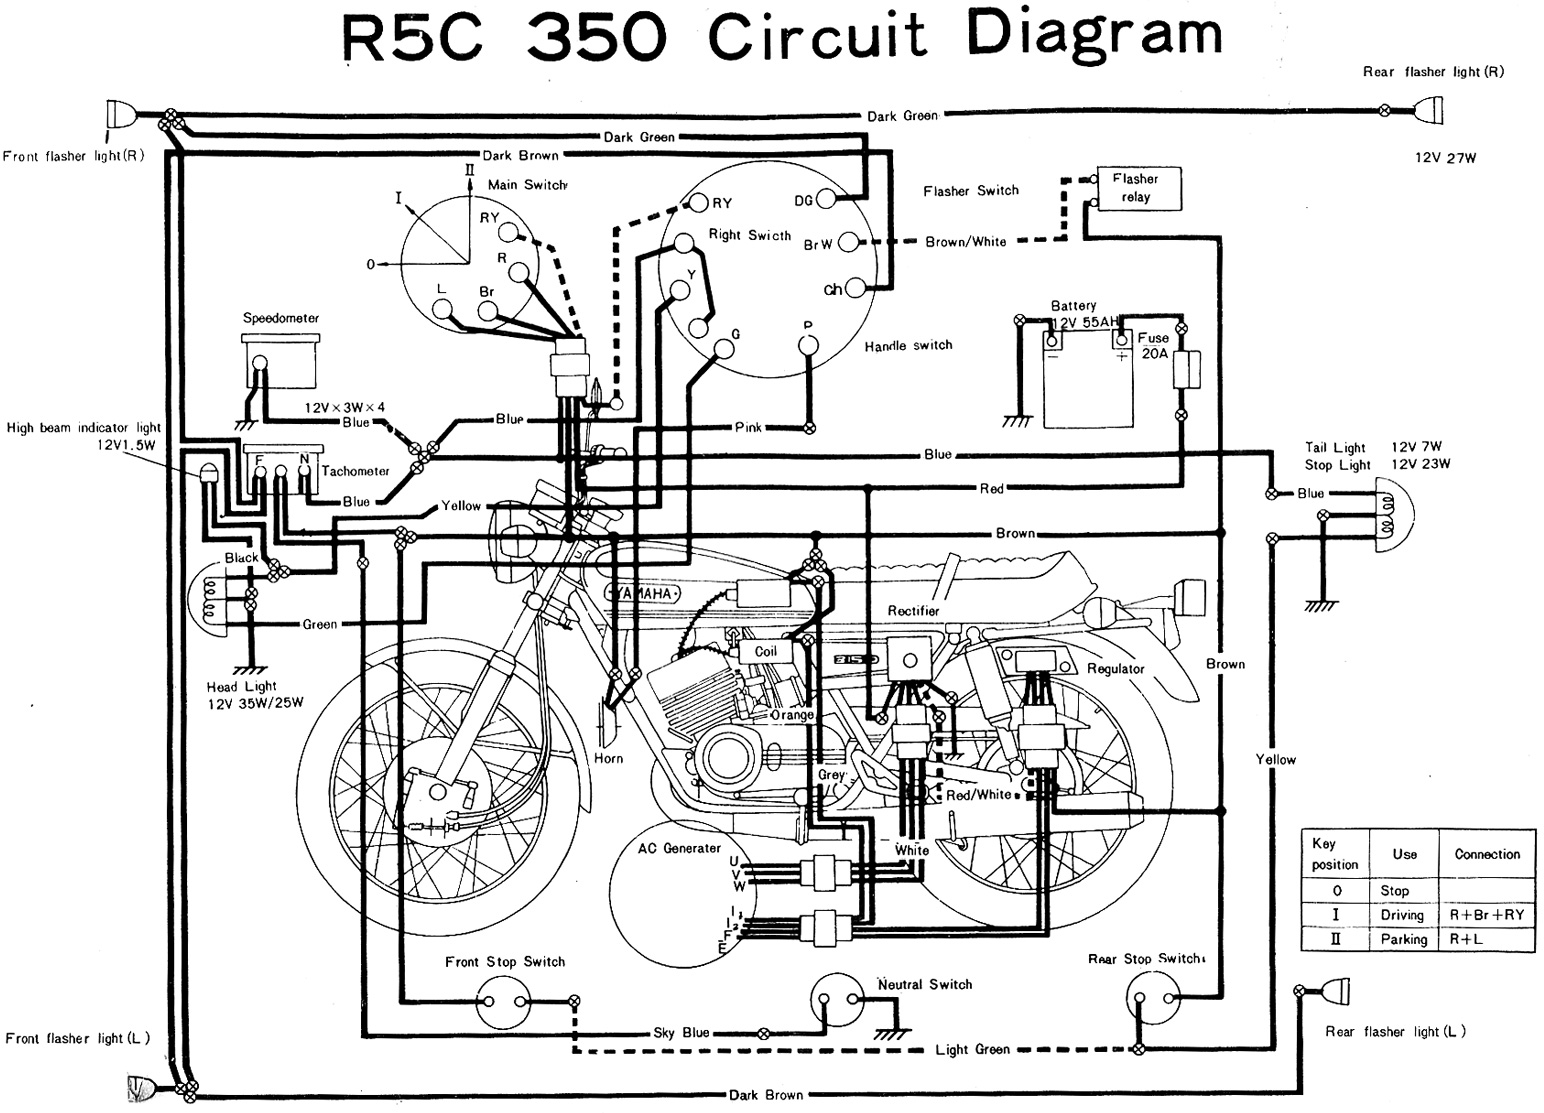 Yamaha Motorcycle Generator Diagram Wire Data Schema Power Of Simple Rd350 R5c Wiring Evan Fell Works Super Quiet Camping Generators 3000 Watt Inverter